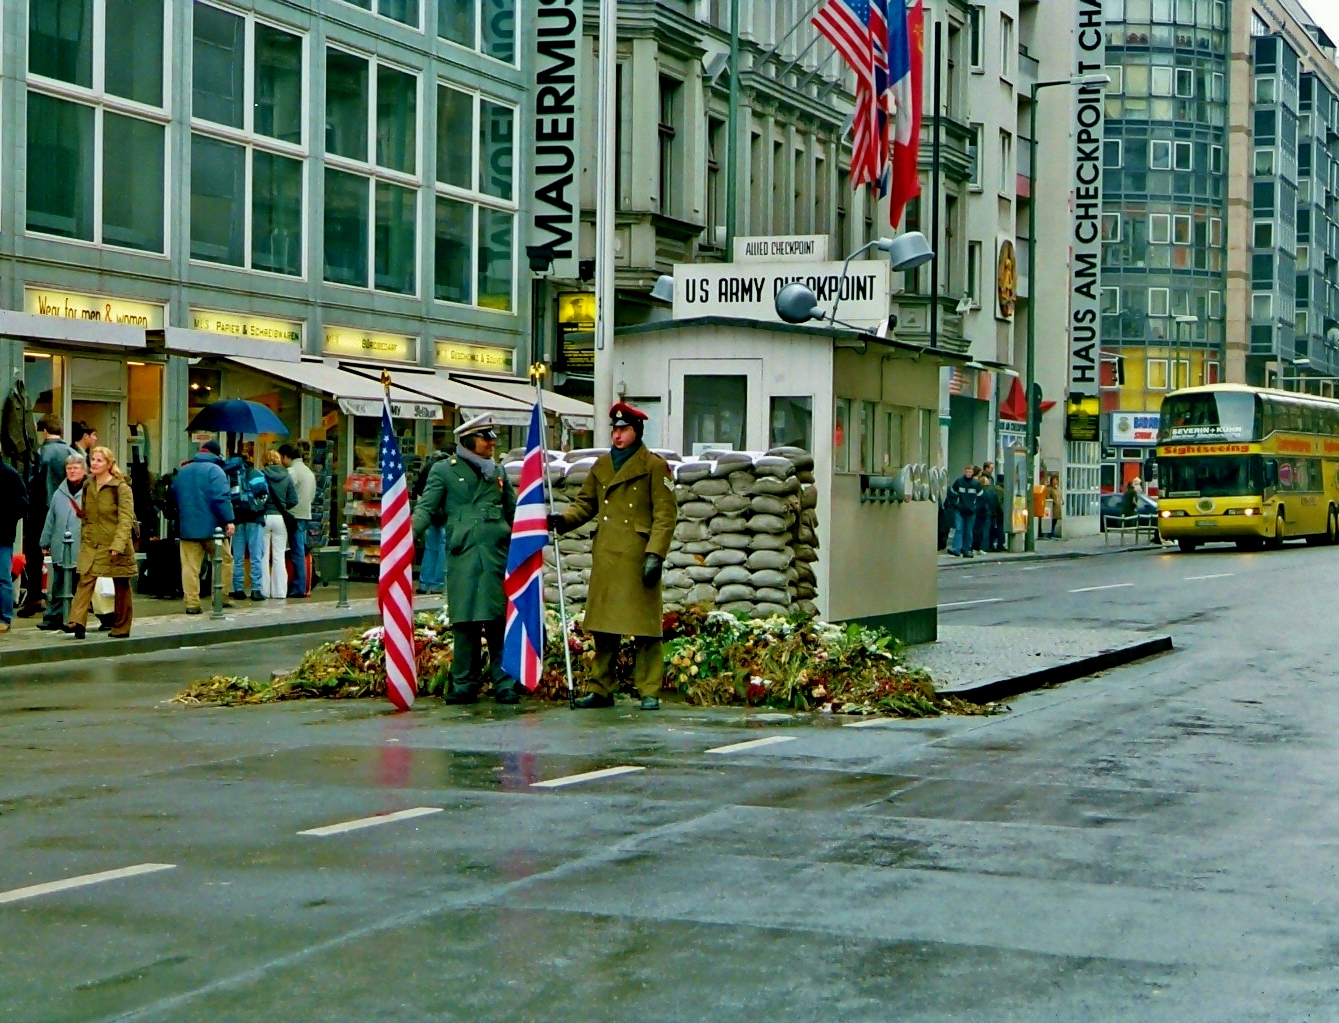 US Army Checkpoint (Berlin)